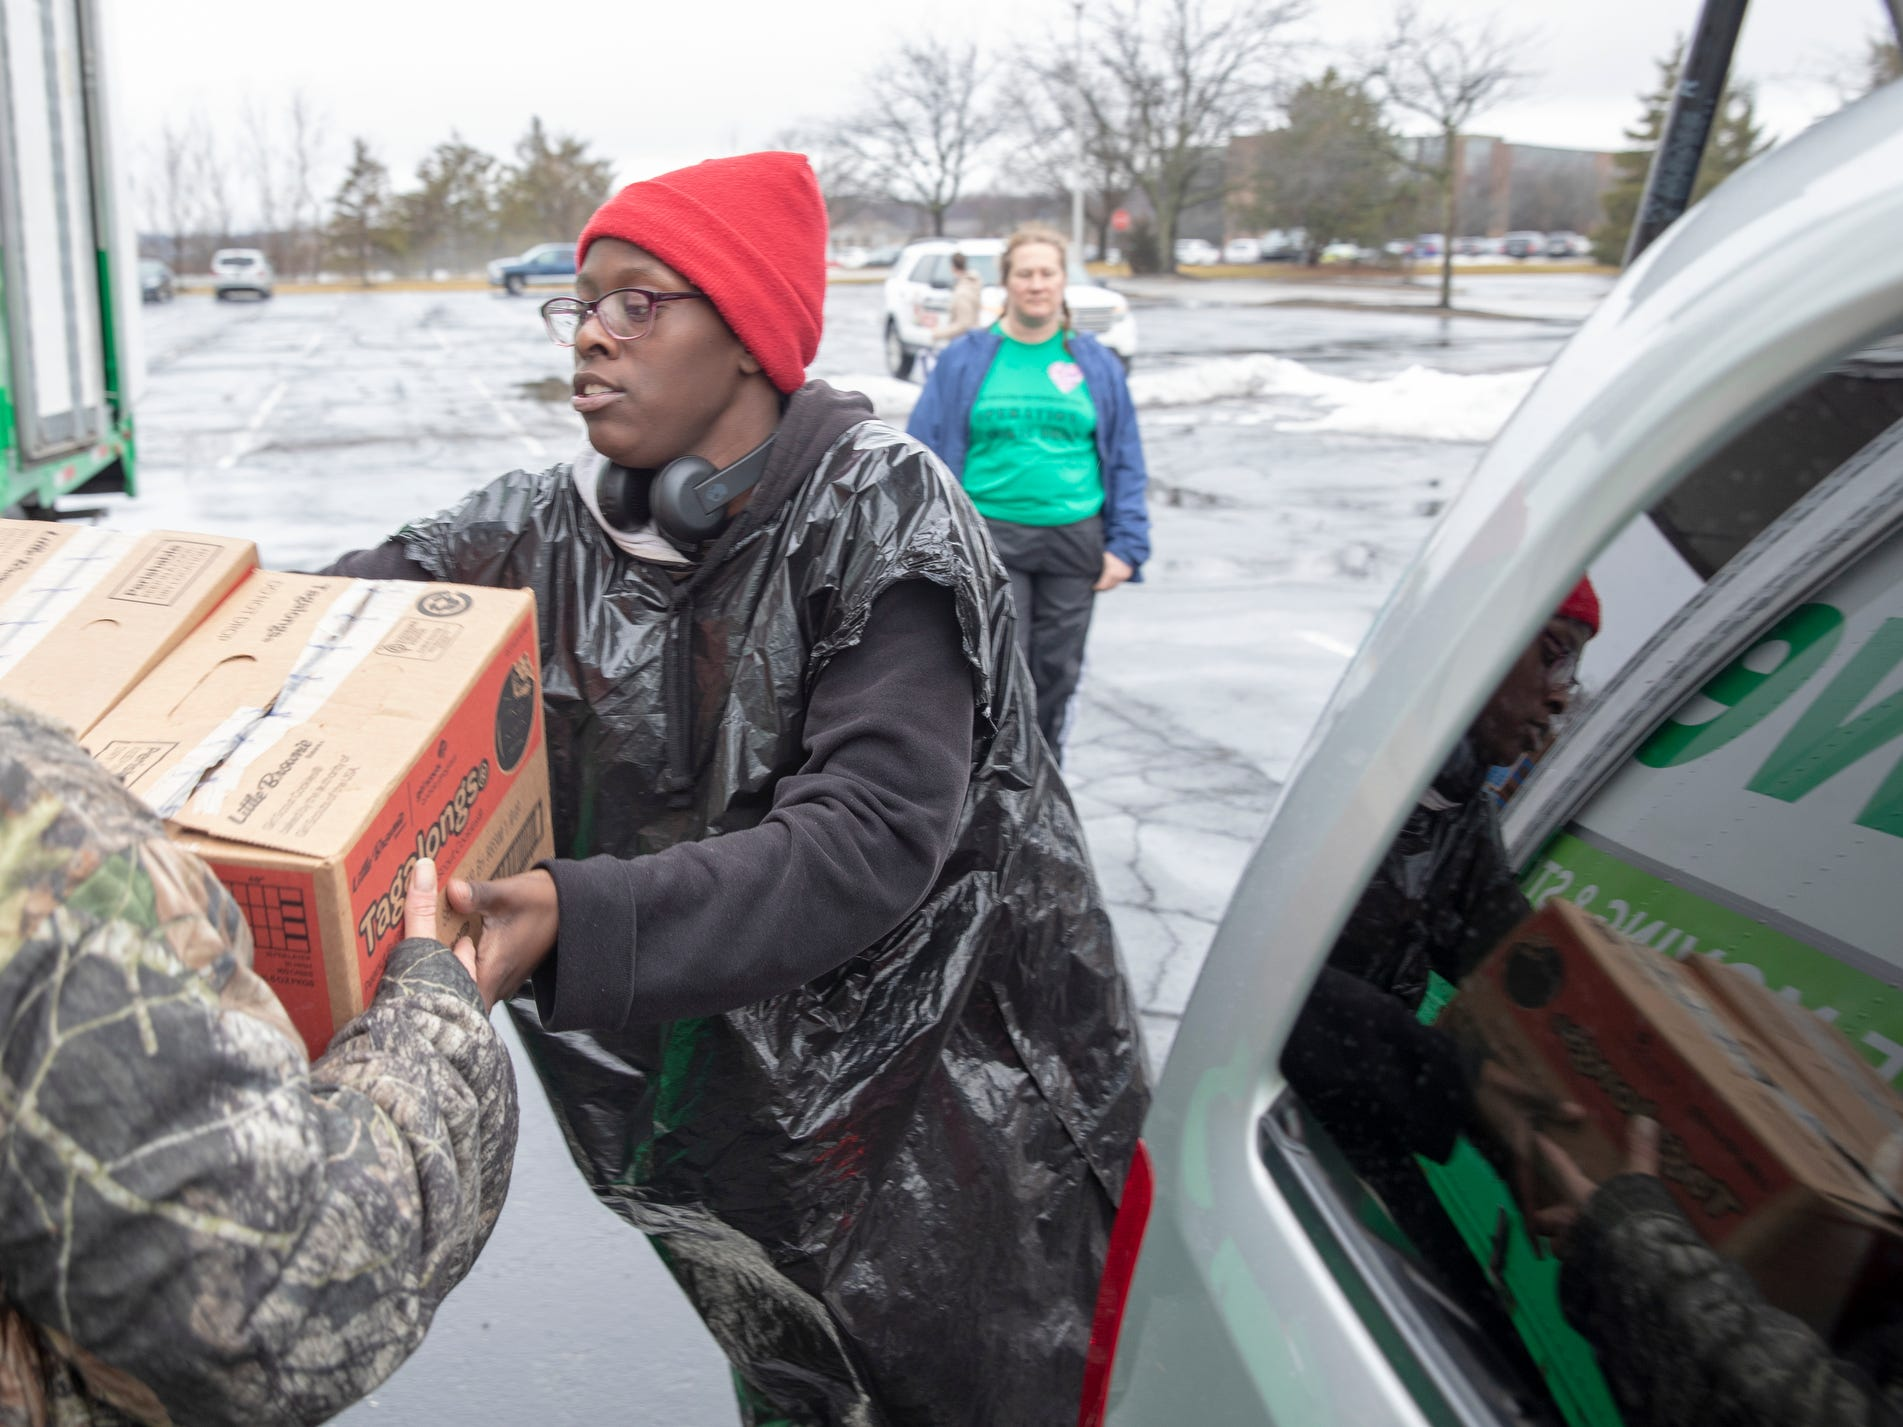 Amie'e Elliott helps load up a car during distribution for Girl Scout Cookies in Indianapolis, Wednesday, Feb. 6, 2019. The cookies will start to appear locally on the weekend, and should last into mid-March.